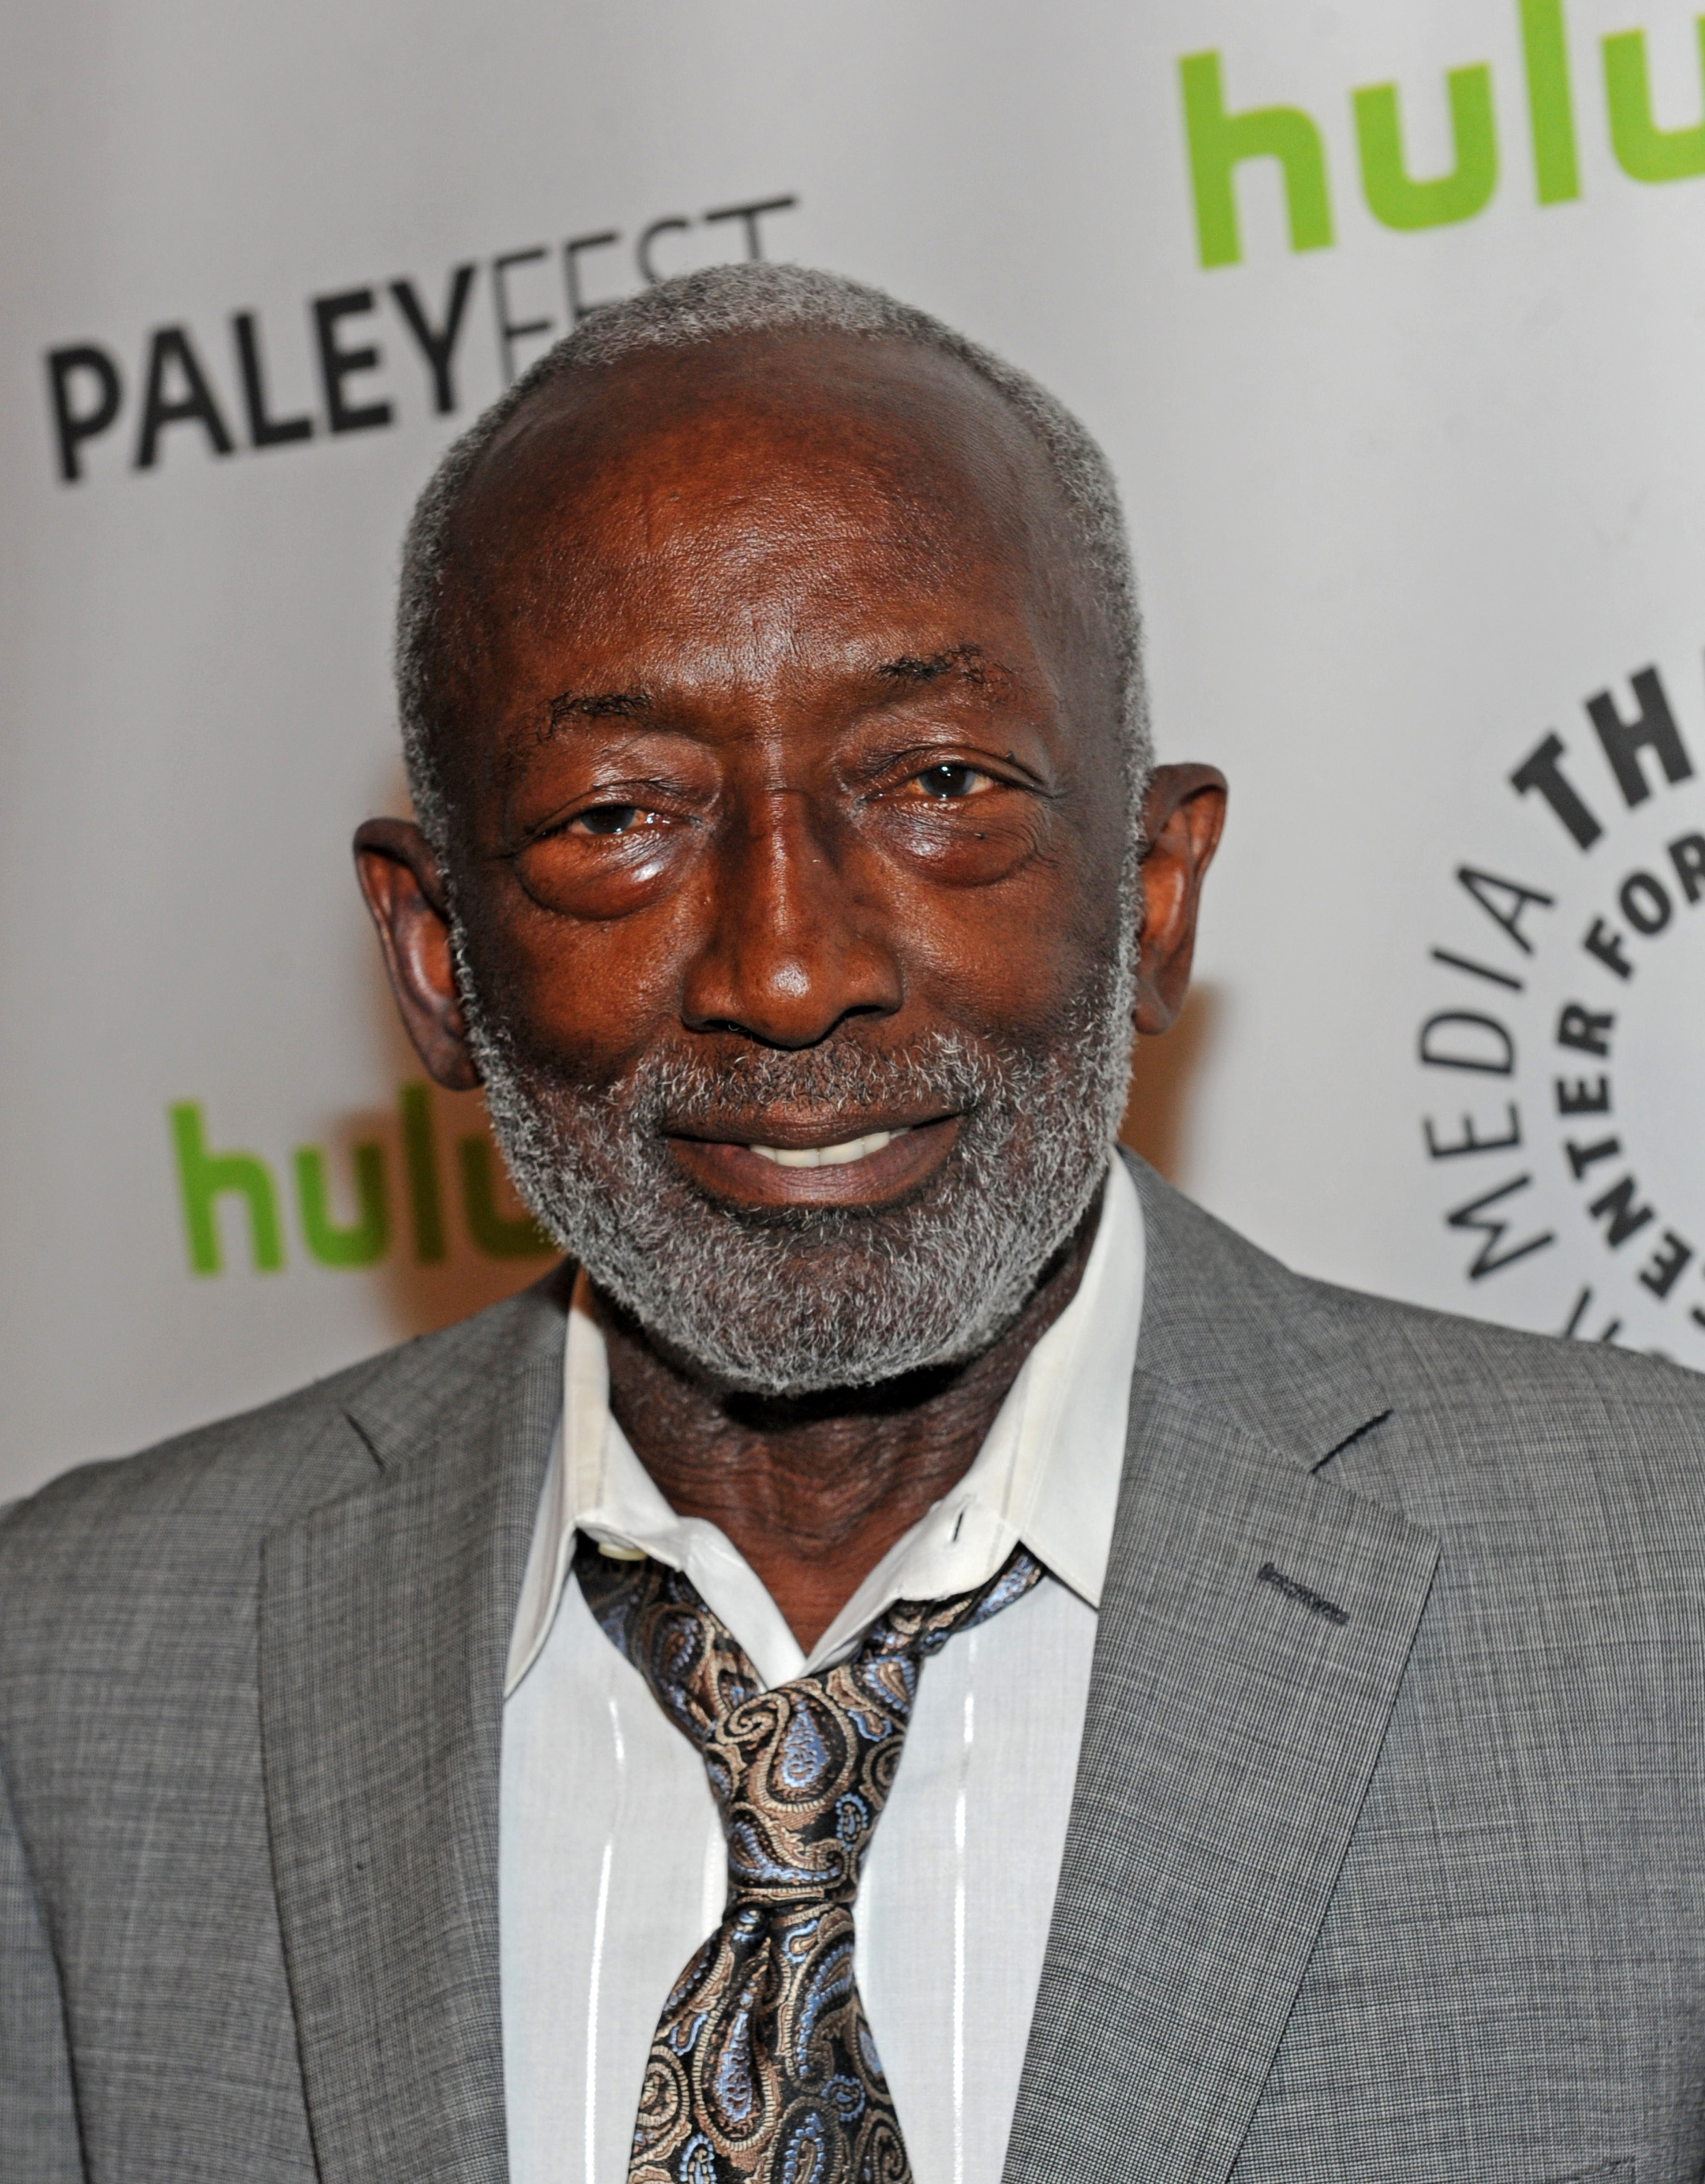 garrett morris musicgarrett morris music, garrett morris instagram, garrett morris, garrett morris ant man, garrett morris family guy, гаррет моррис, garrett morris height, garrett morris net worth, garrett morris snl, garrett morris baseball, garrett morris hearing impaired, garrett morris shot, garrett morris ant man snl, garrett morris imdb, garrett morris snl baseball, garrett morris winter wonderland snl, garrett morris wife, garrett morris comedy club, garrett morris singing